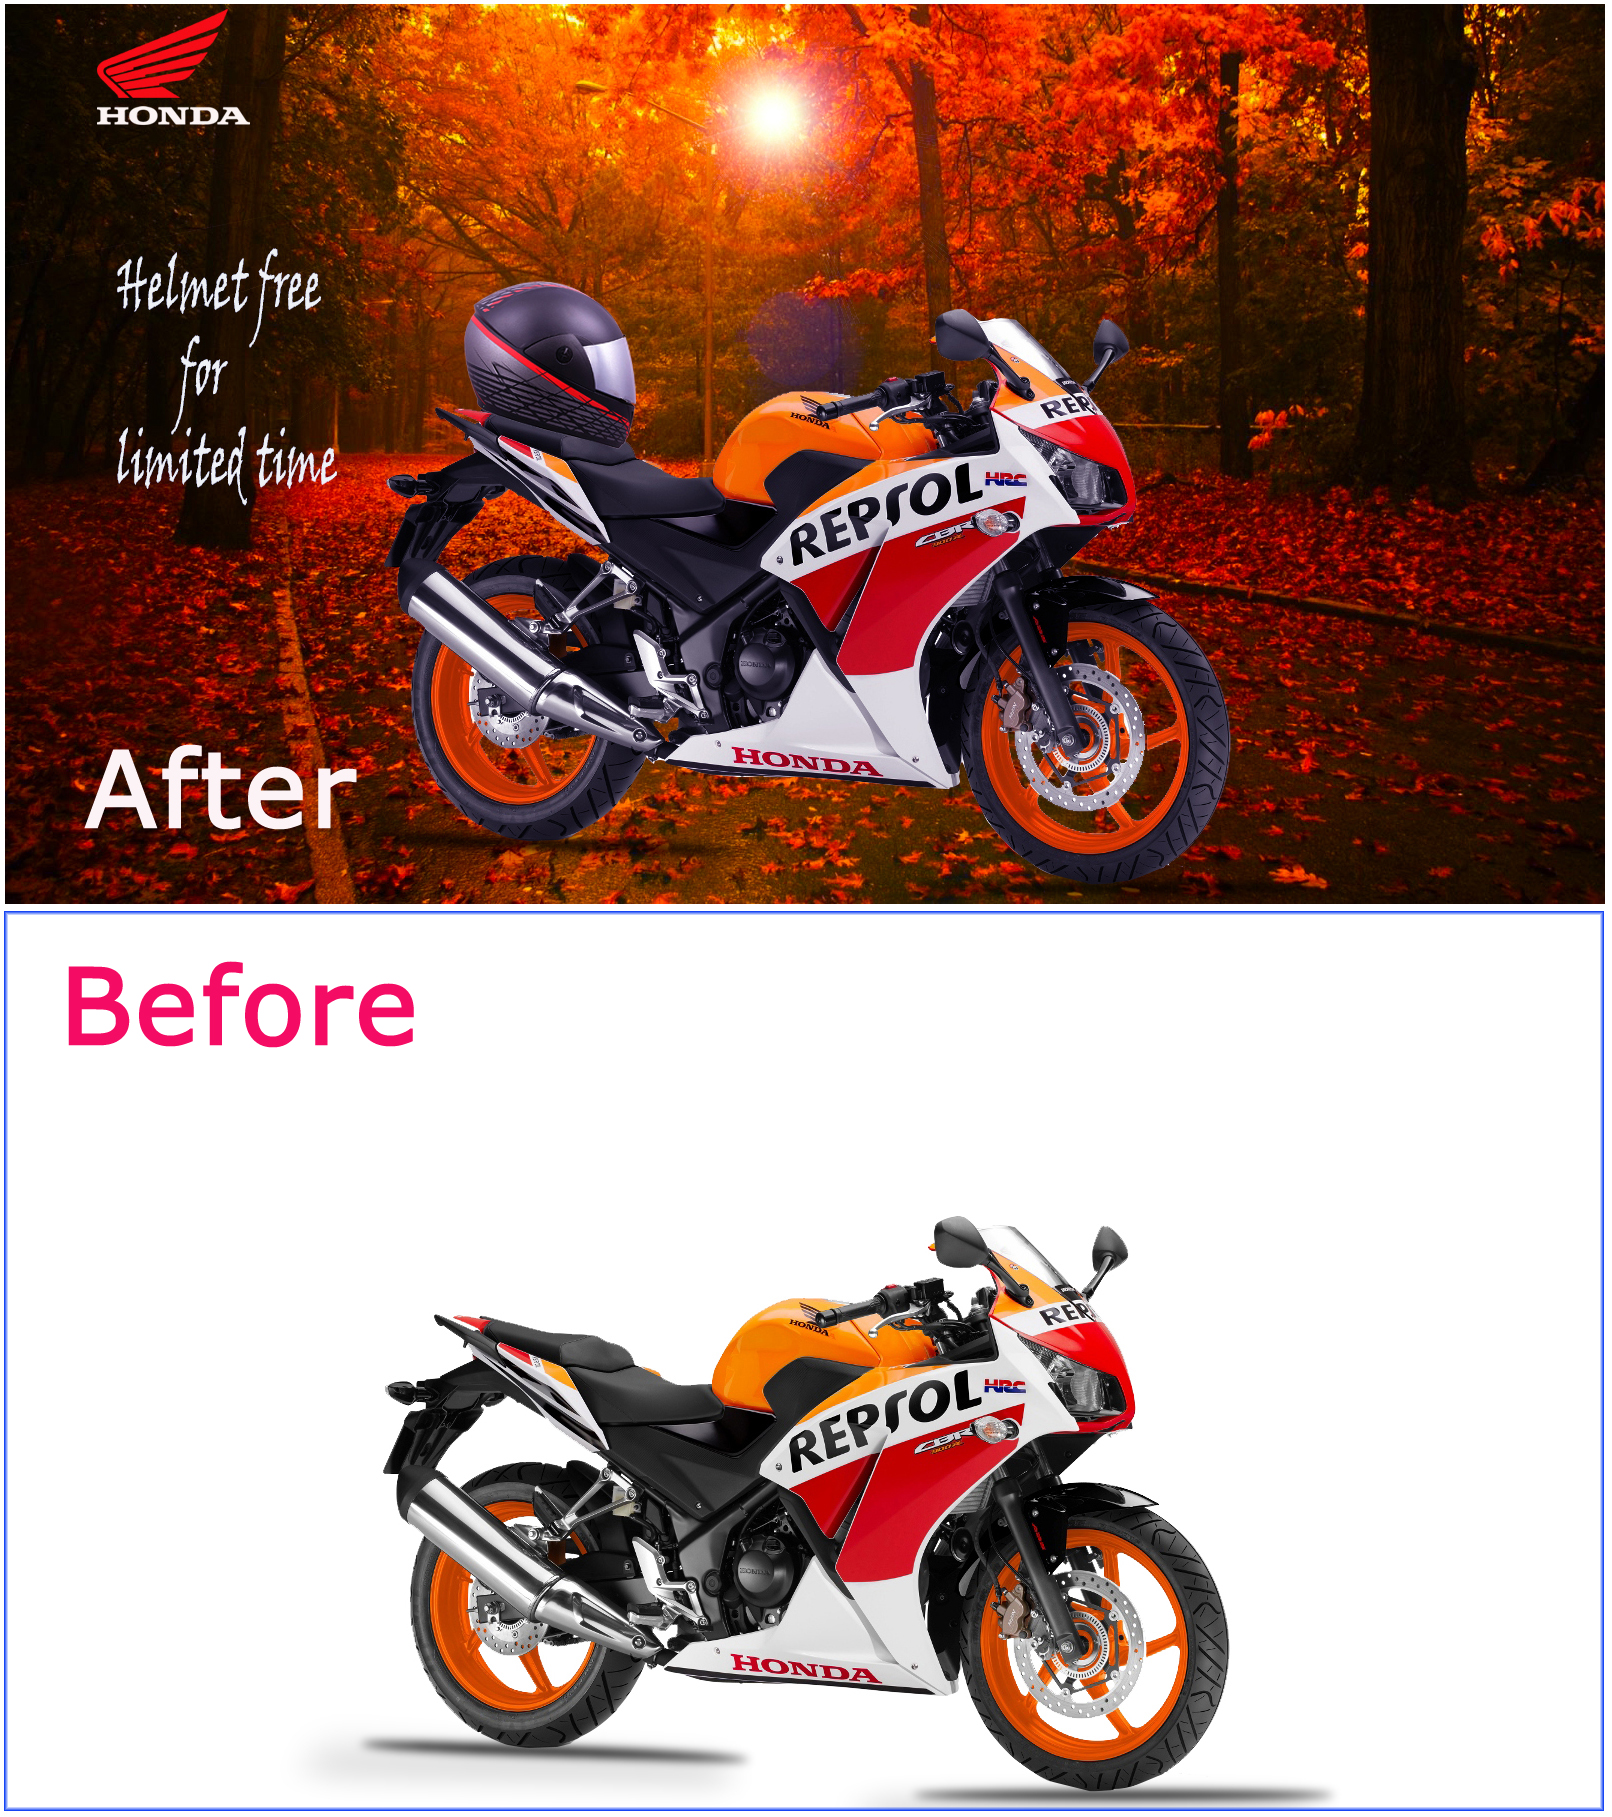 Do Photoshop Editing And Photo Manipulation